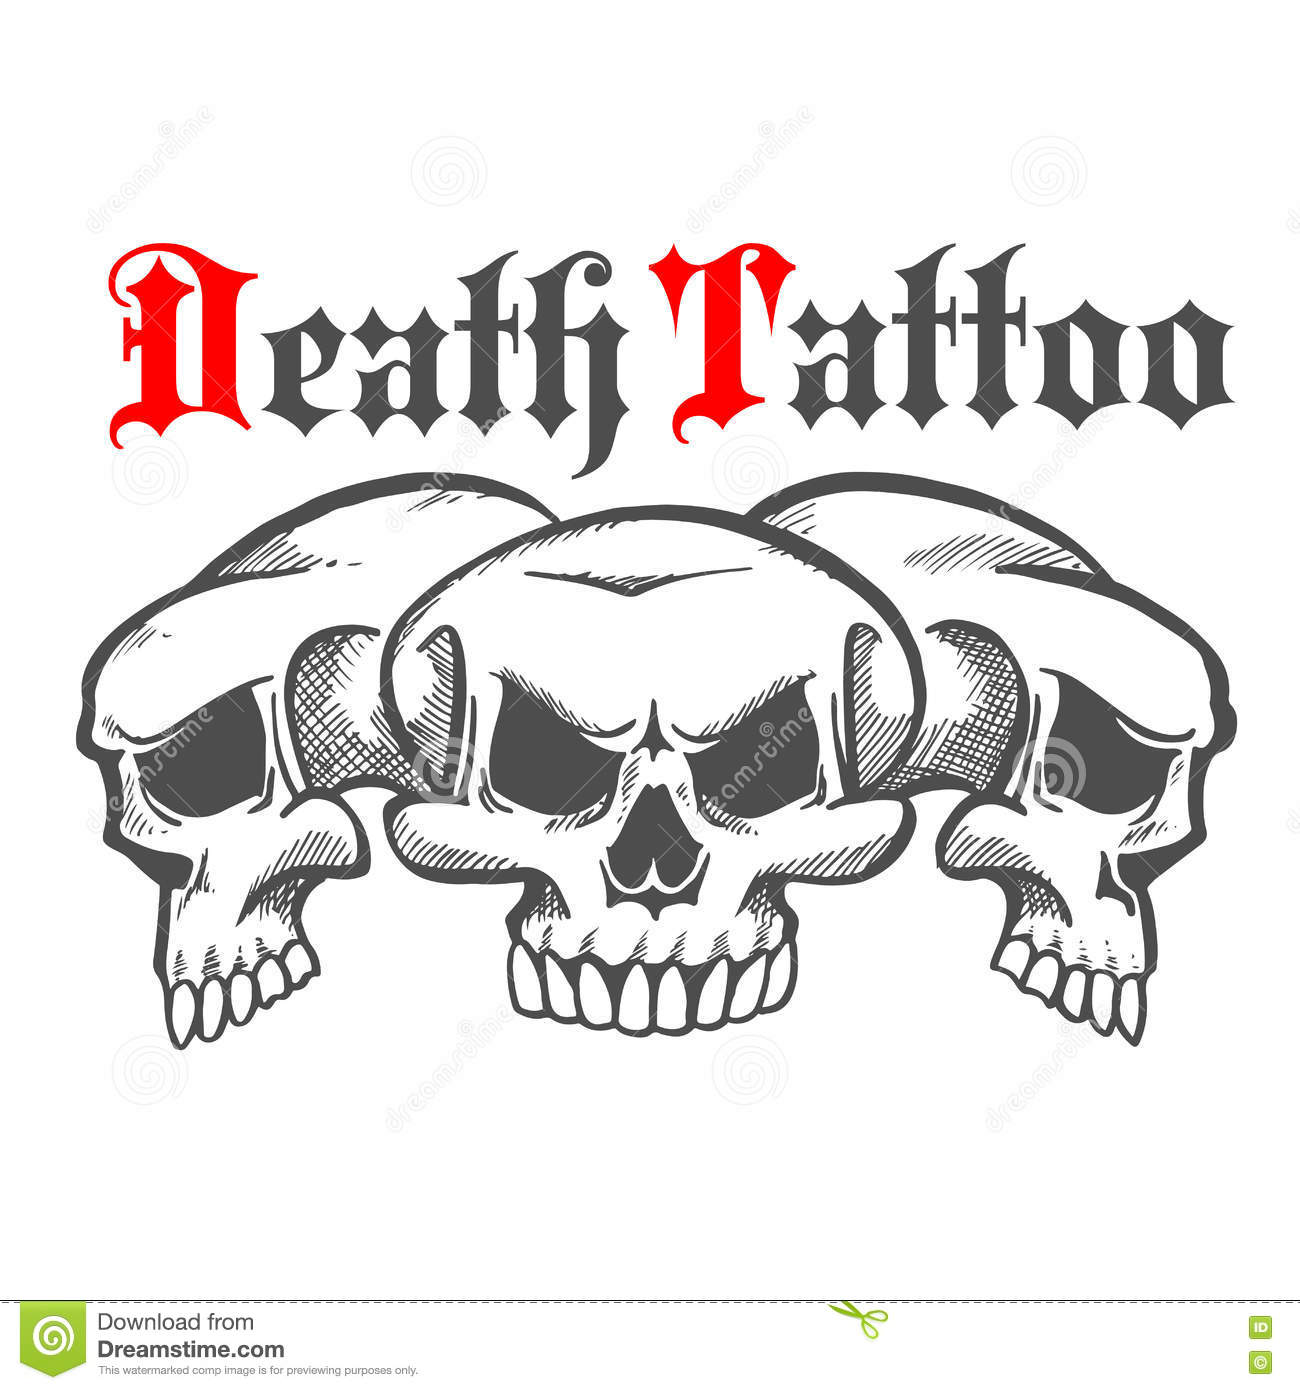 Group of skulls for death tattoo. Download preview